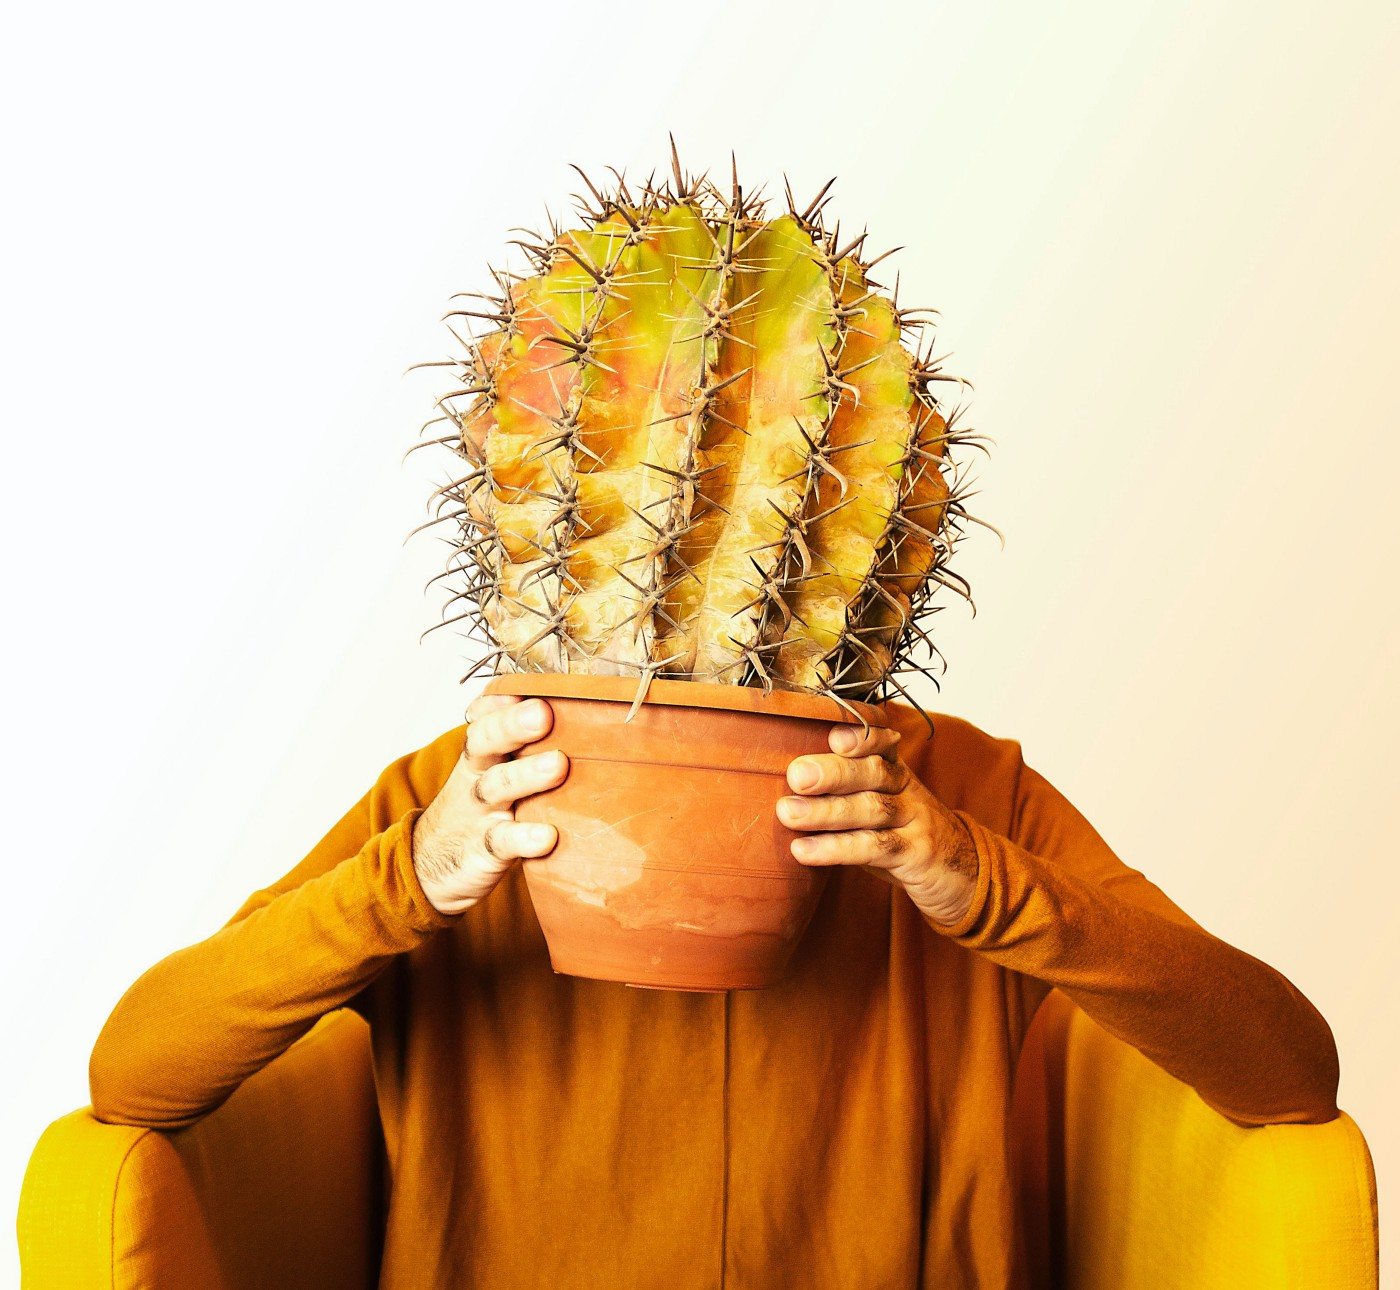 Person holding a cactus plant in front of his face.